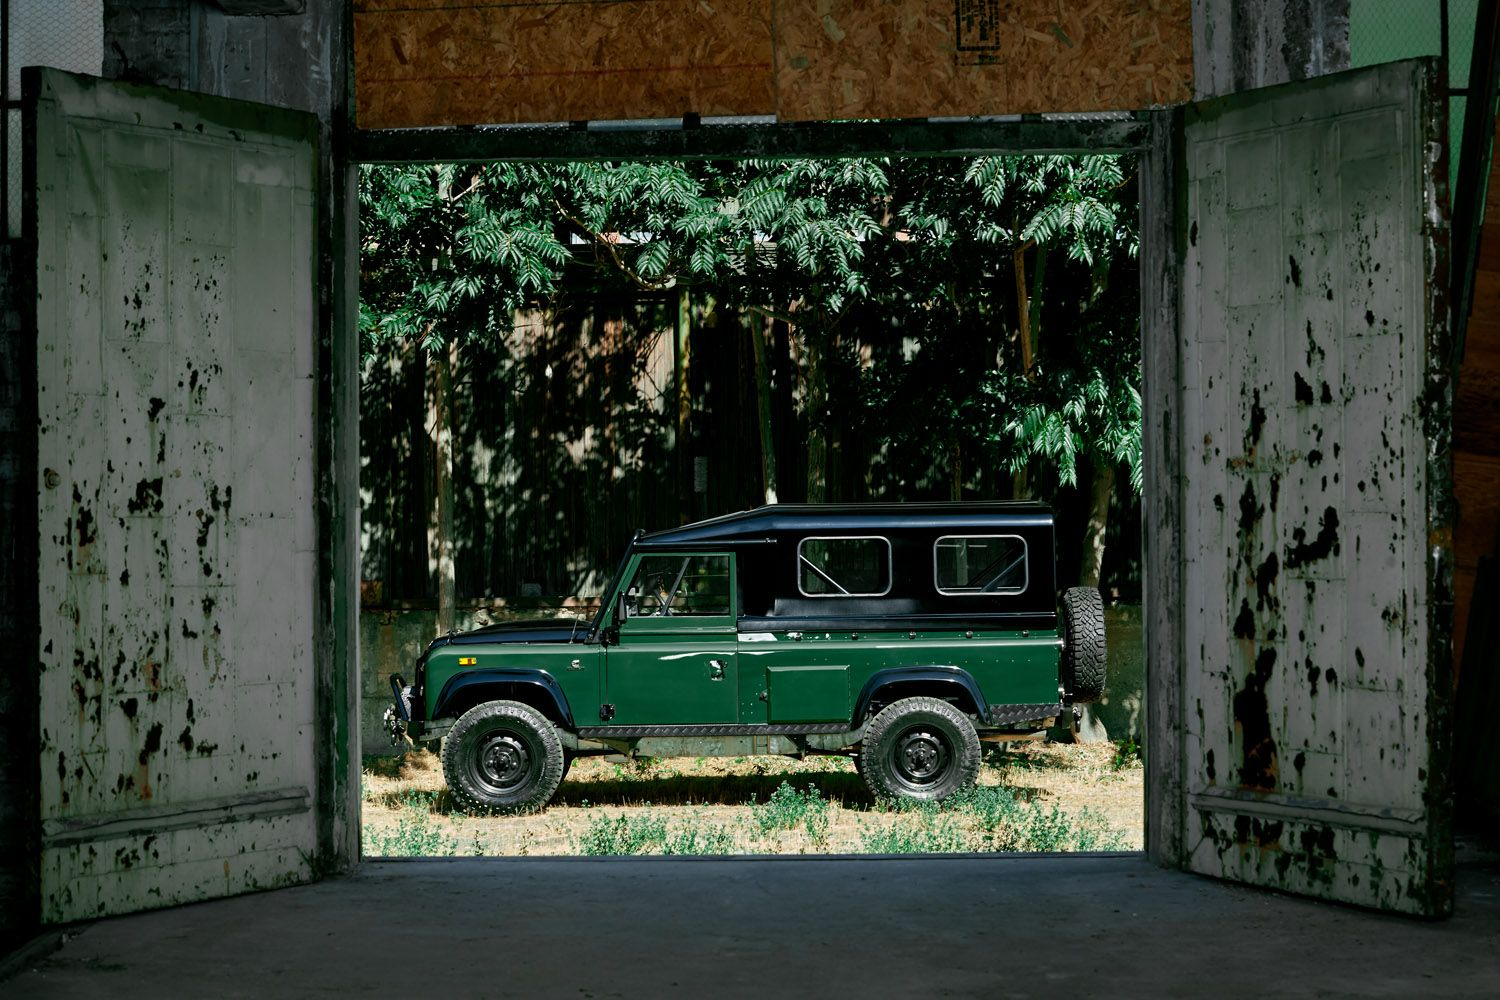 20180807_AUTOMOTIVE_LANDROVER_12967.jpg